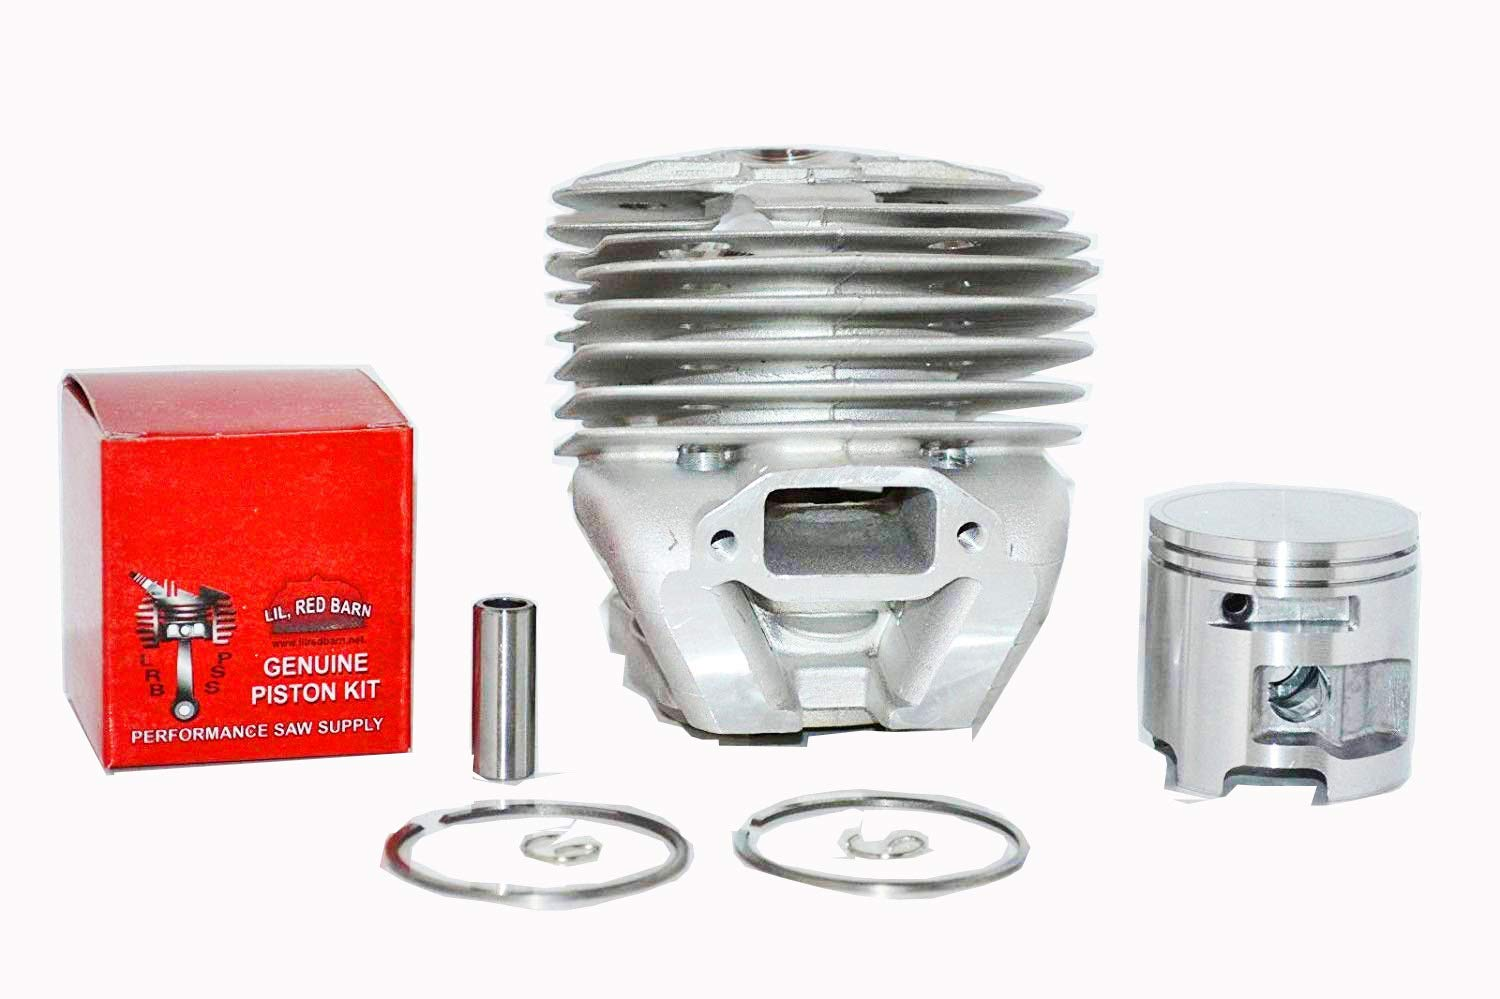 Lil Red Barn Husqvarna 575xp, 575, 570 Cylinder & Piston 51mm, Replaces Part # 537254102 Includes Installation Instructions!